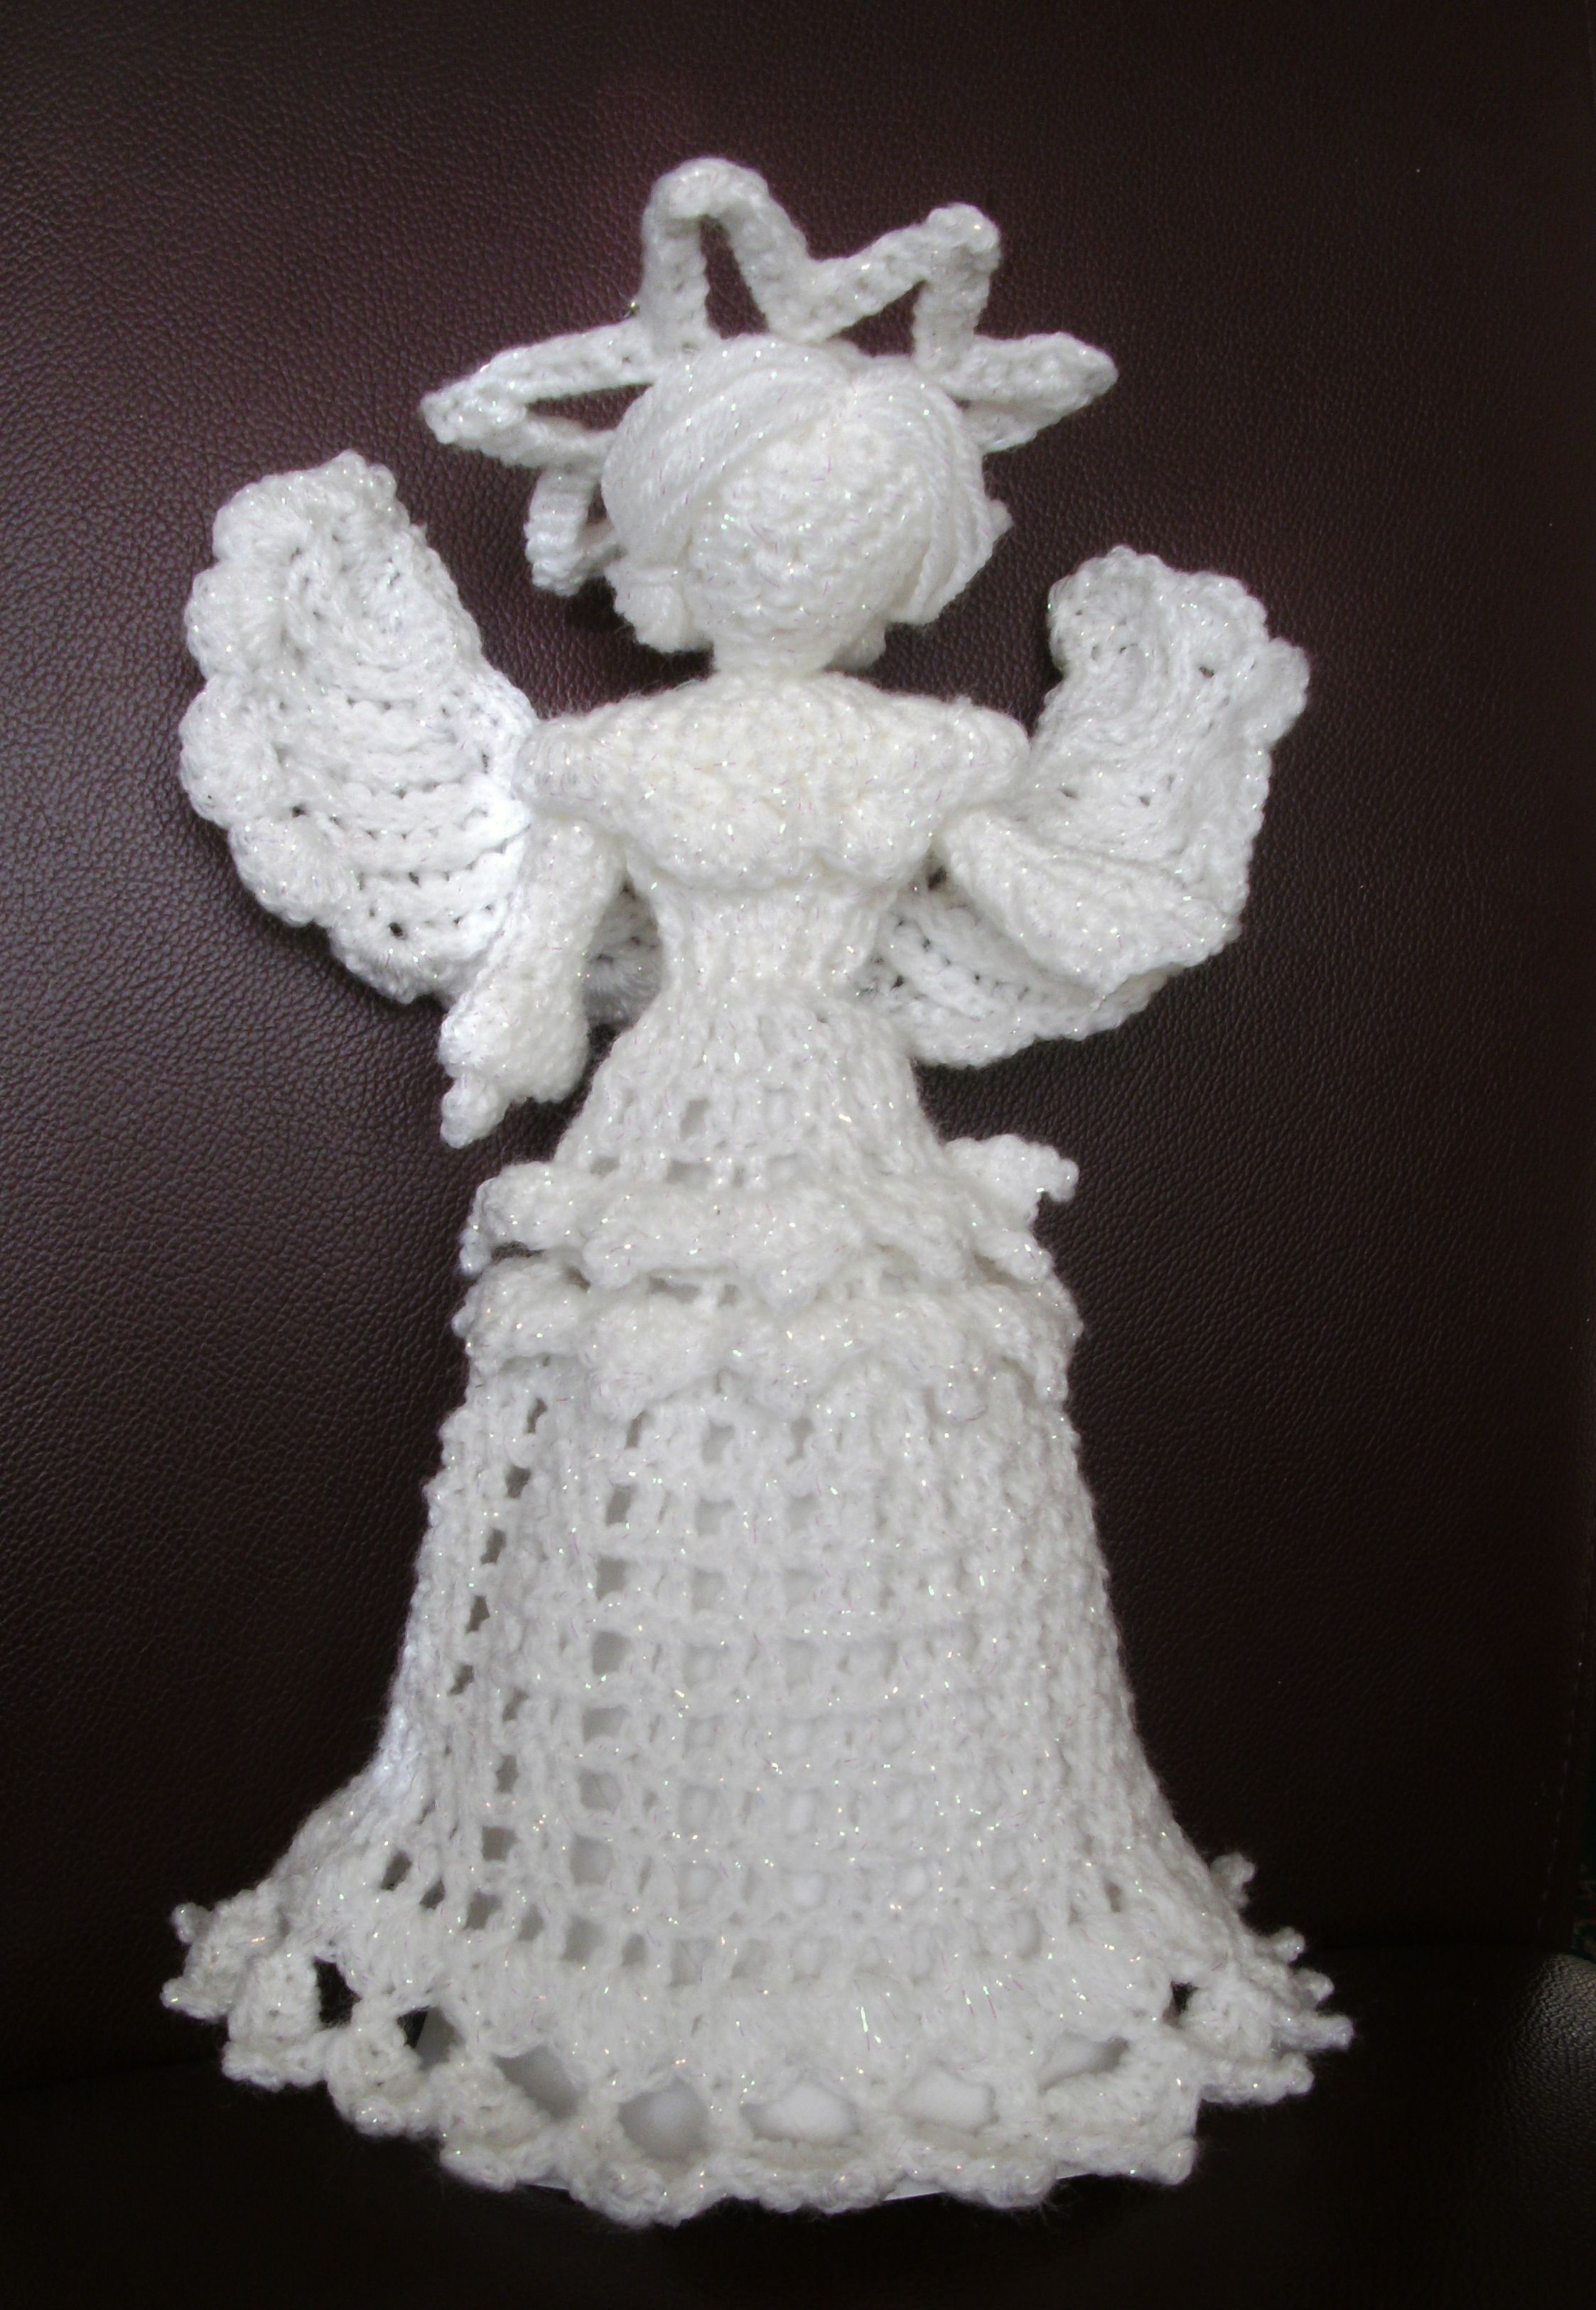 Crochet Angel I Am Making For Child Cancer Charity Appeal